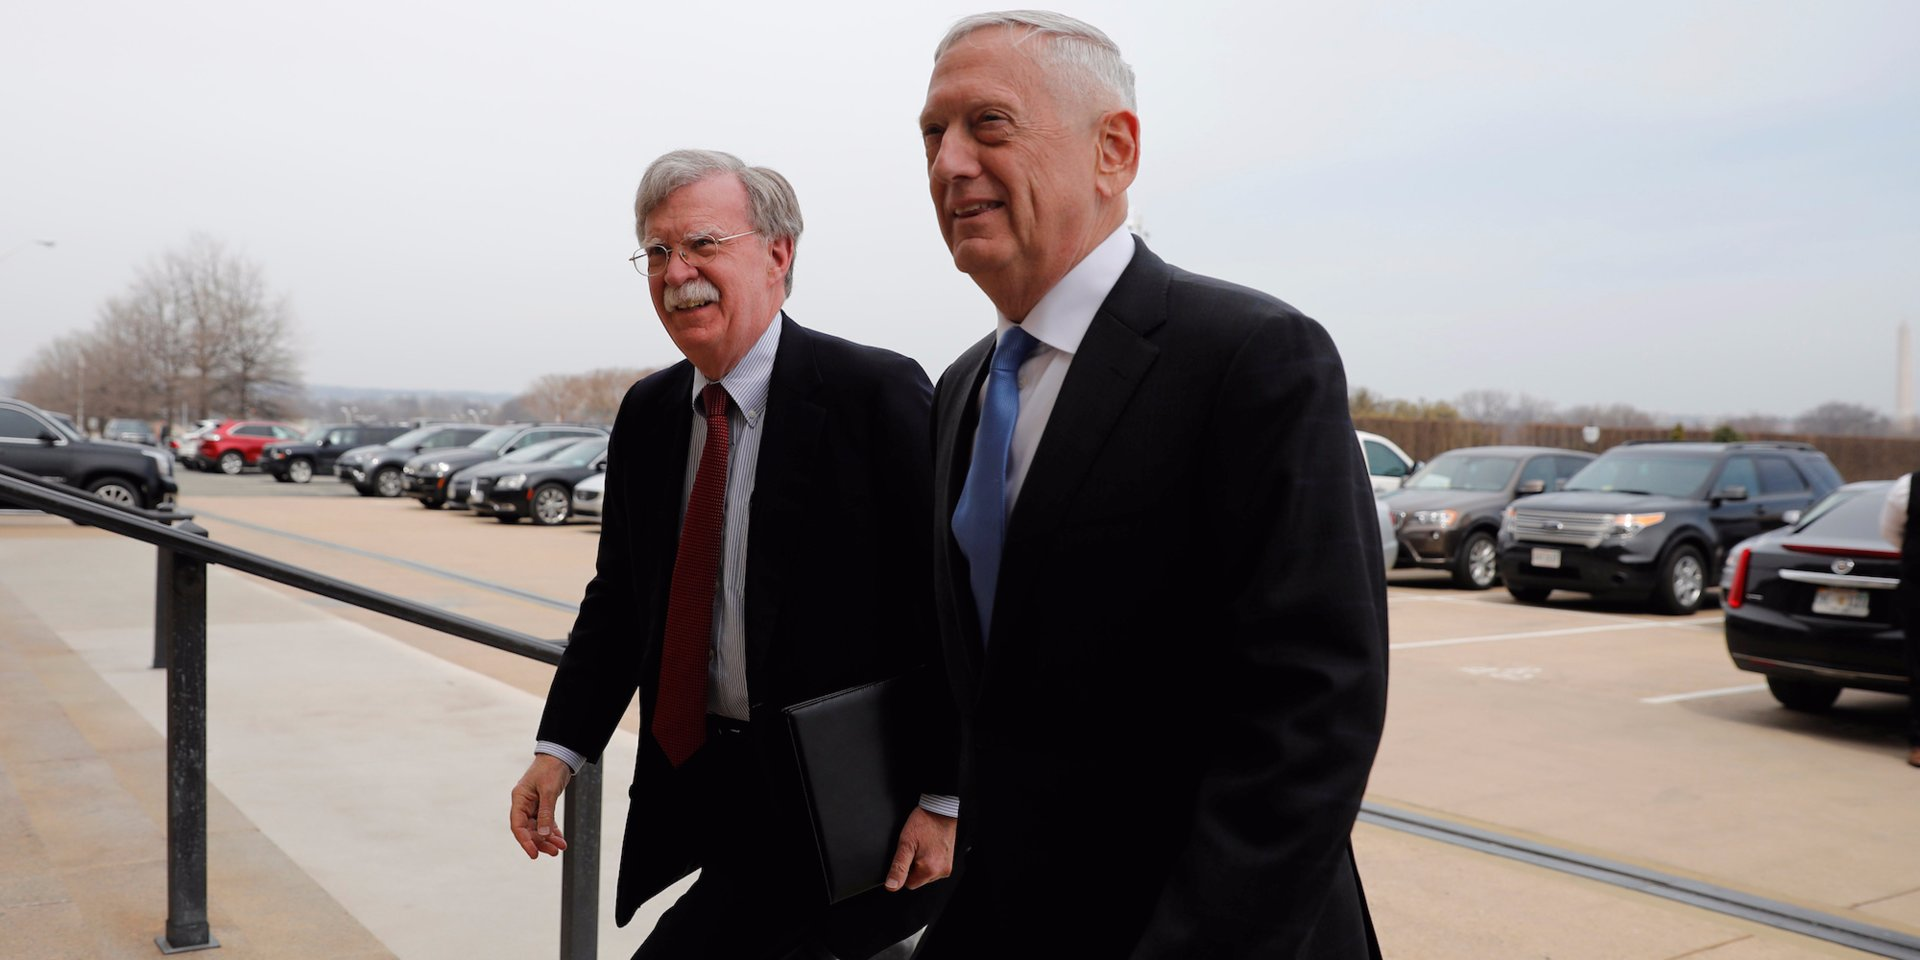 WATCH Mattis told new national security adviser John Bolton that he heard he was the devil incarnate in offmic moment when they fist met at the Pentagon